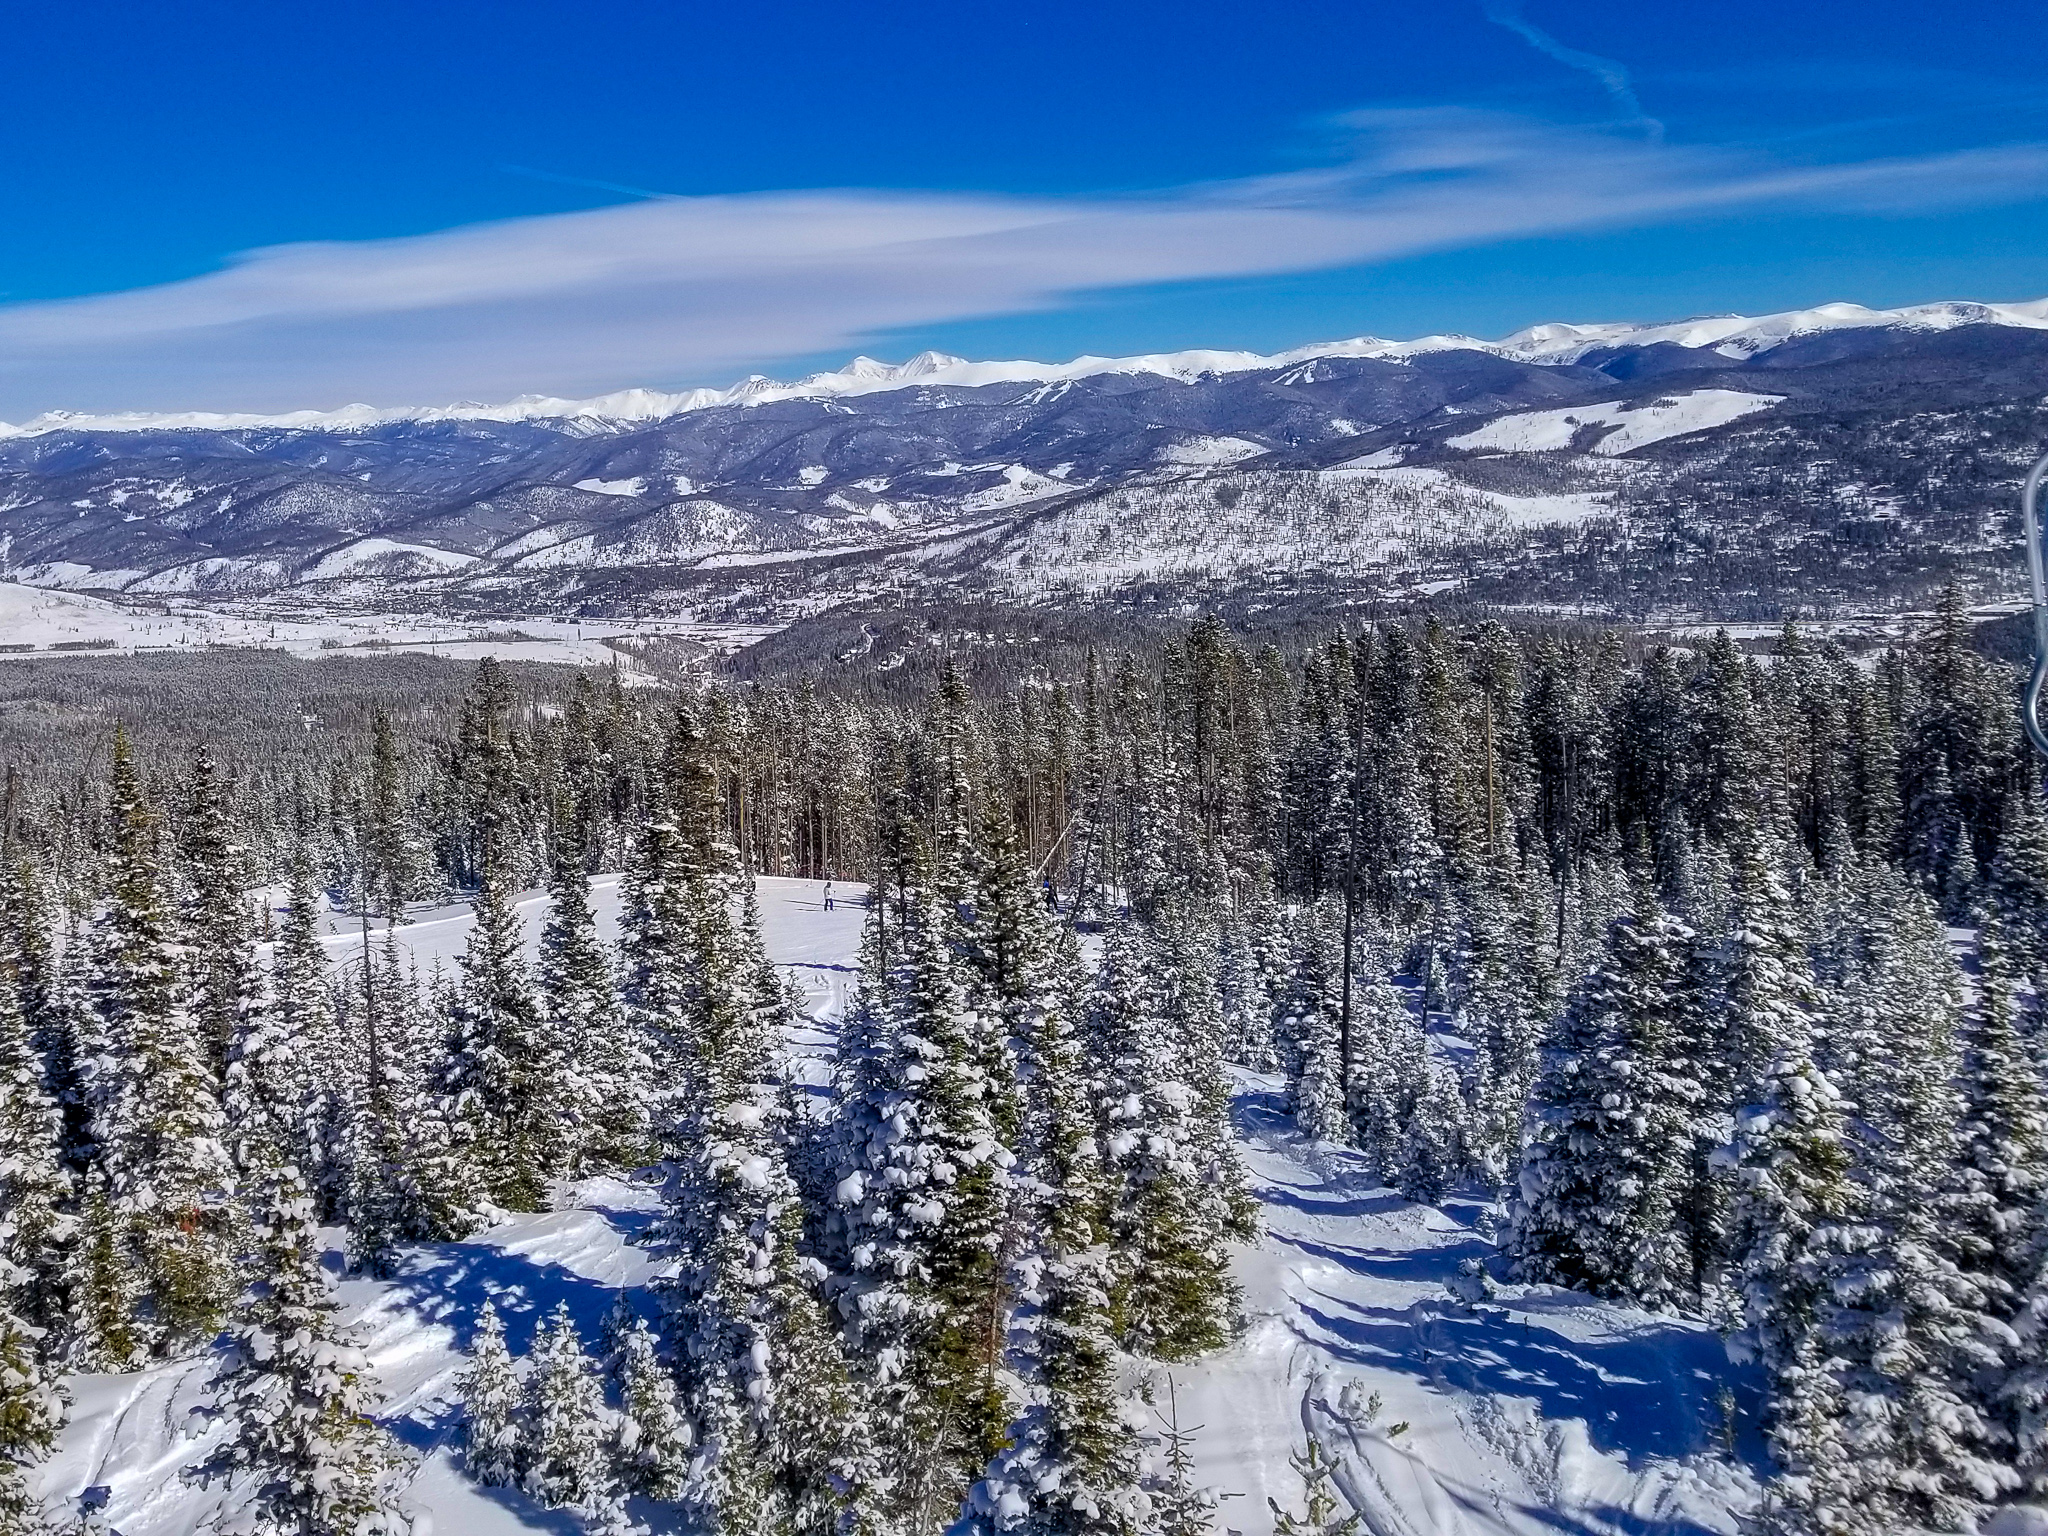 Winter Skiing in Breckenridge Colorado